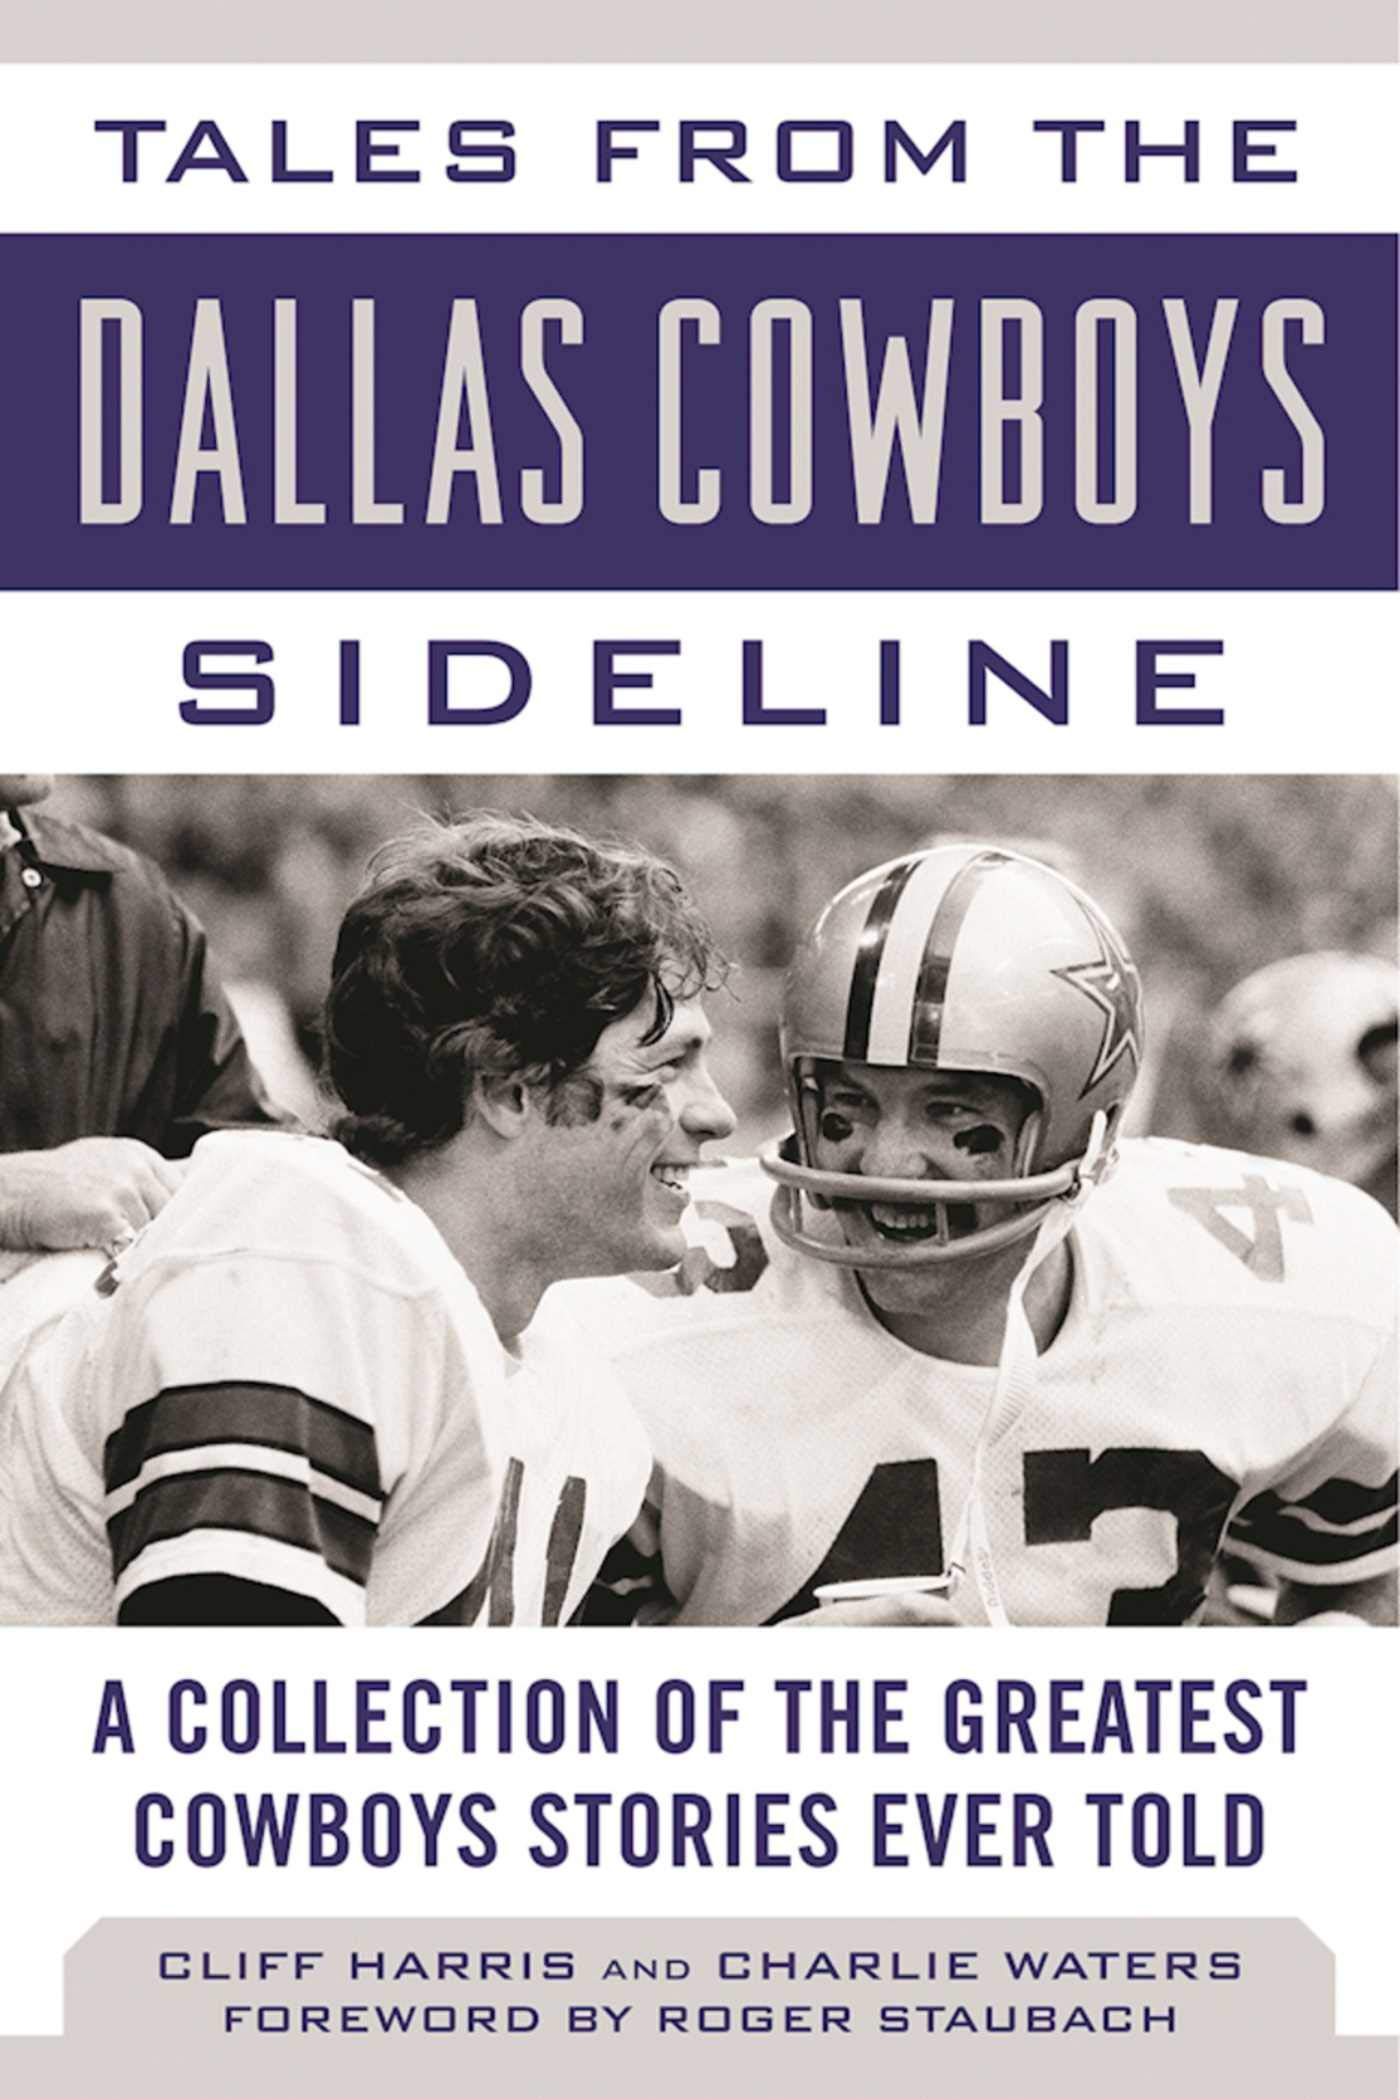 Tales from the Dallas Cowboys Sideline: A Collection of the Greatest Cowboys Stories Ever Told (Tales from the Team) by Sports Publishing